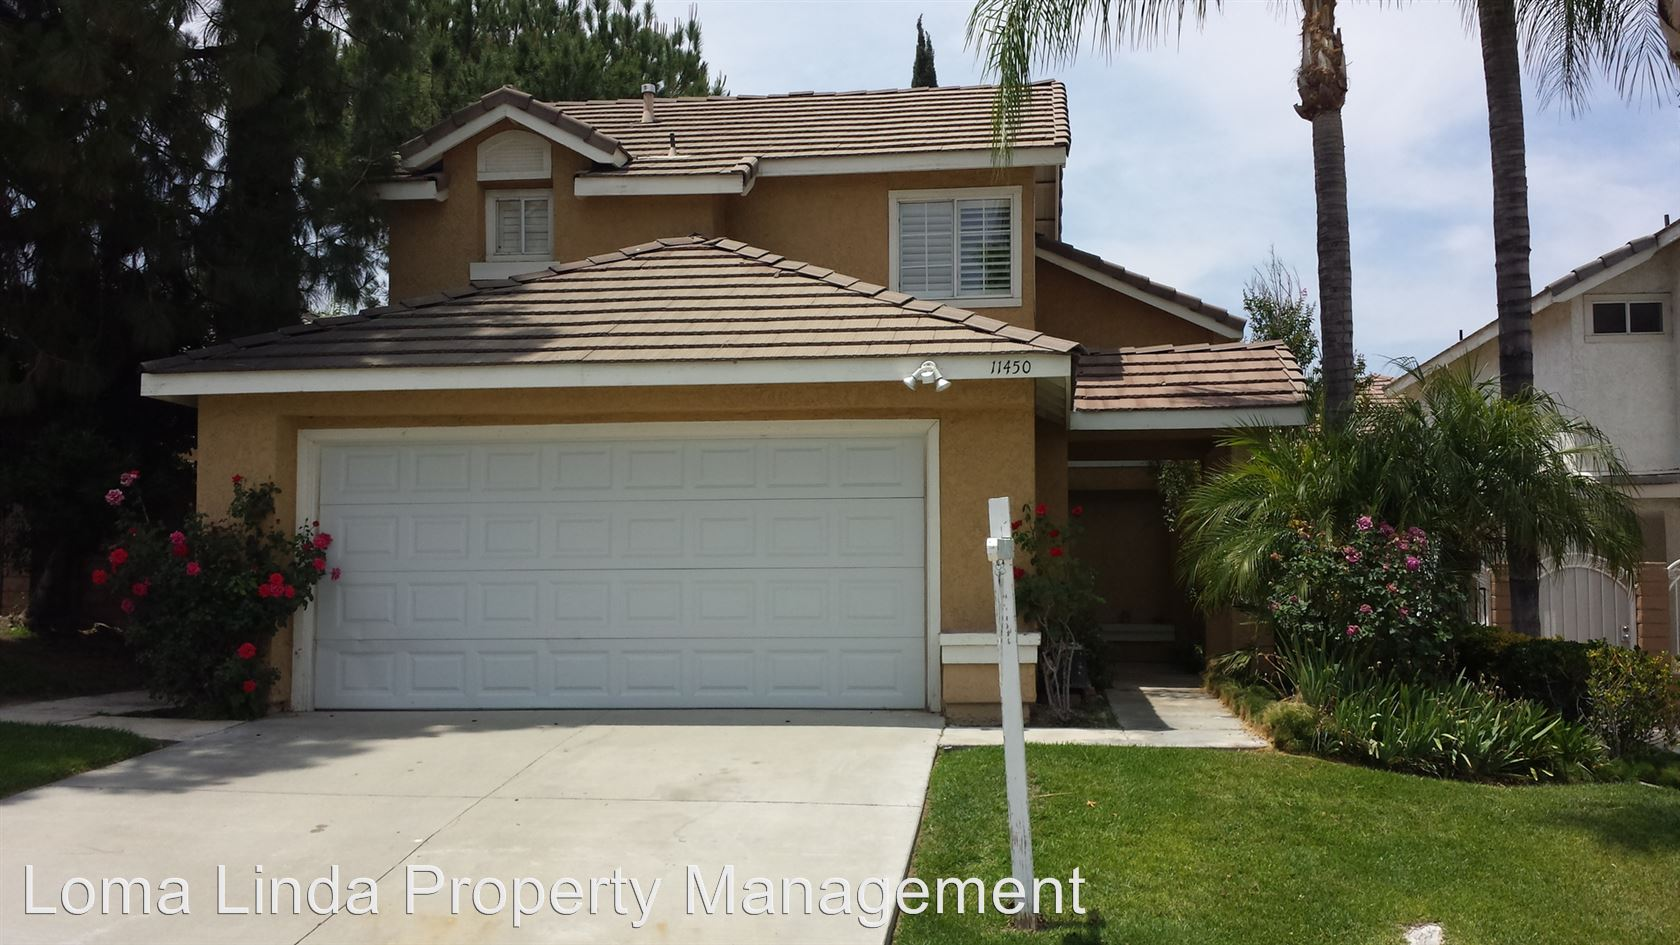 20 Best Apartments In Loma Linda, CA (with pictures)!